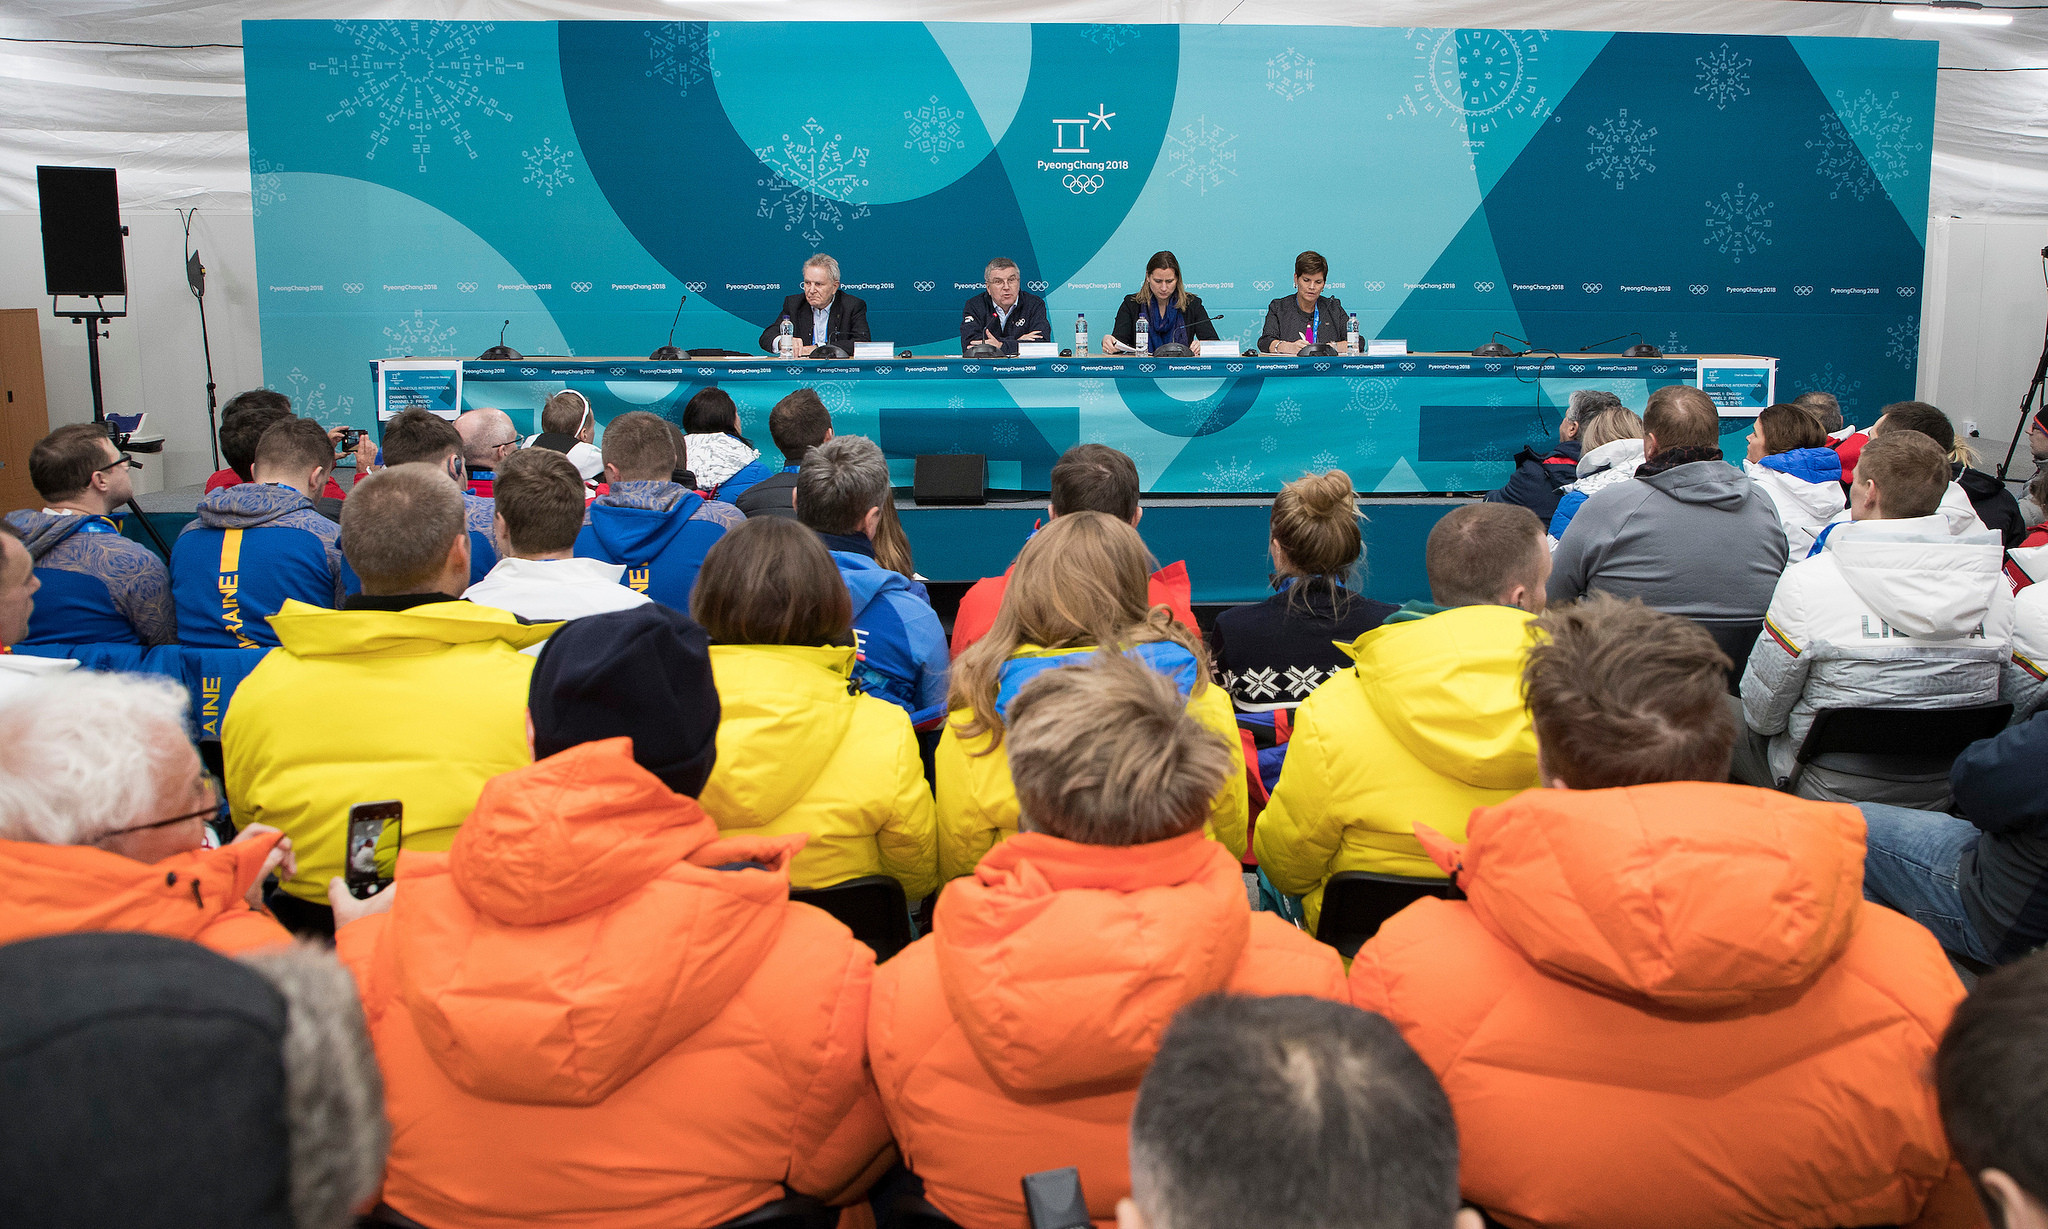 IOC officials including President Thomas Bach brief delegations in the Athletes' Village shortly before an alleged incident between a Canadian and Russian athlete ©IOC/Flickr